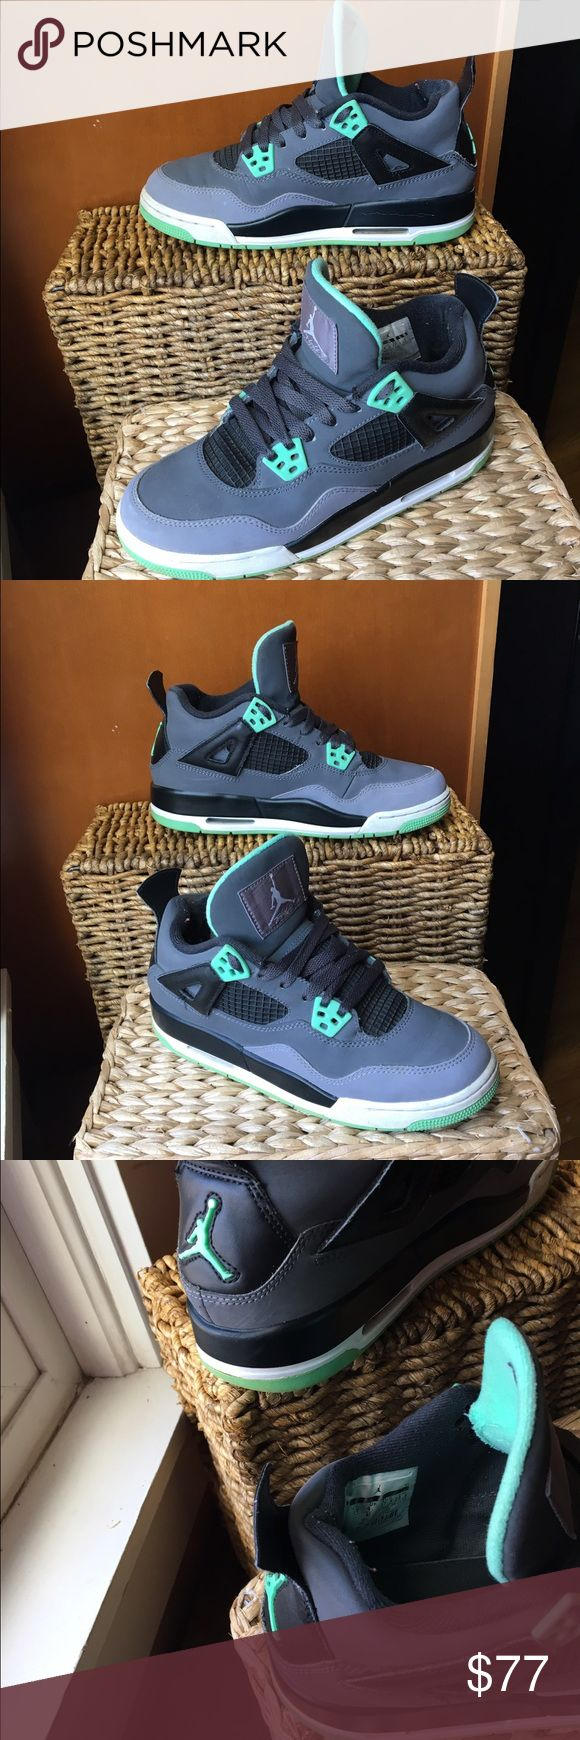 "Air Jordan 4 Retro Green Glow size 5Y NIKE AIR JORDAN 4 RETRO (GS) ""GREEN GLOW"" drk grey, grn glw-cmnt gry-blck 